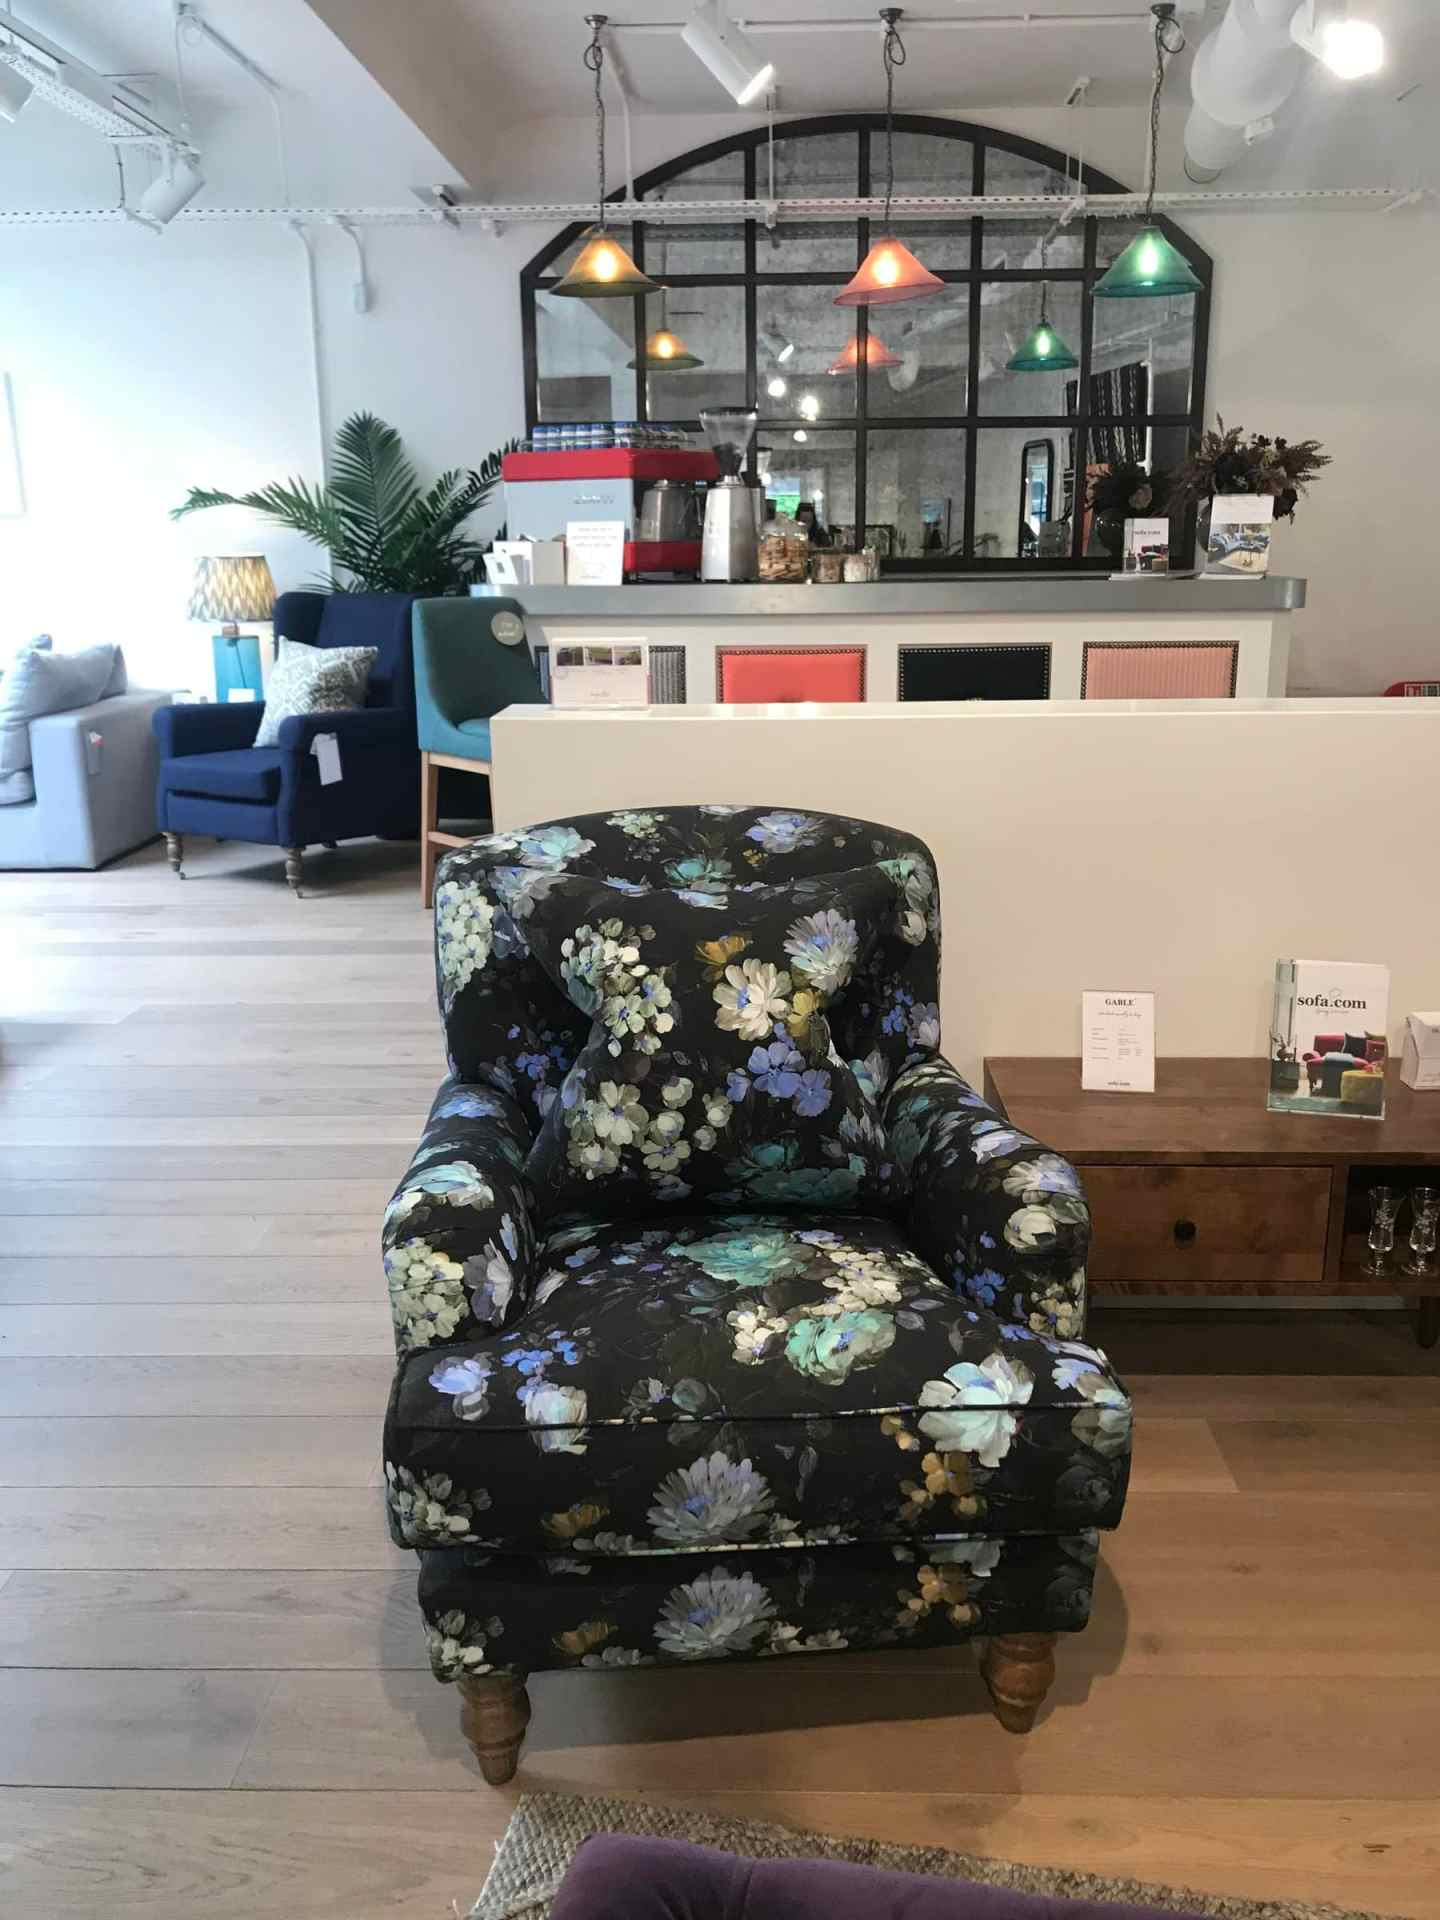 And this  Snowdrop armchair  in the new sofa.com fabric - Periwinkle - complimented the plum sofa perfectly. So much so, I started questioning my whole colour scheme in the living room!